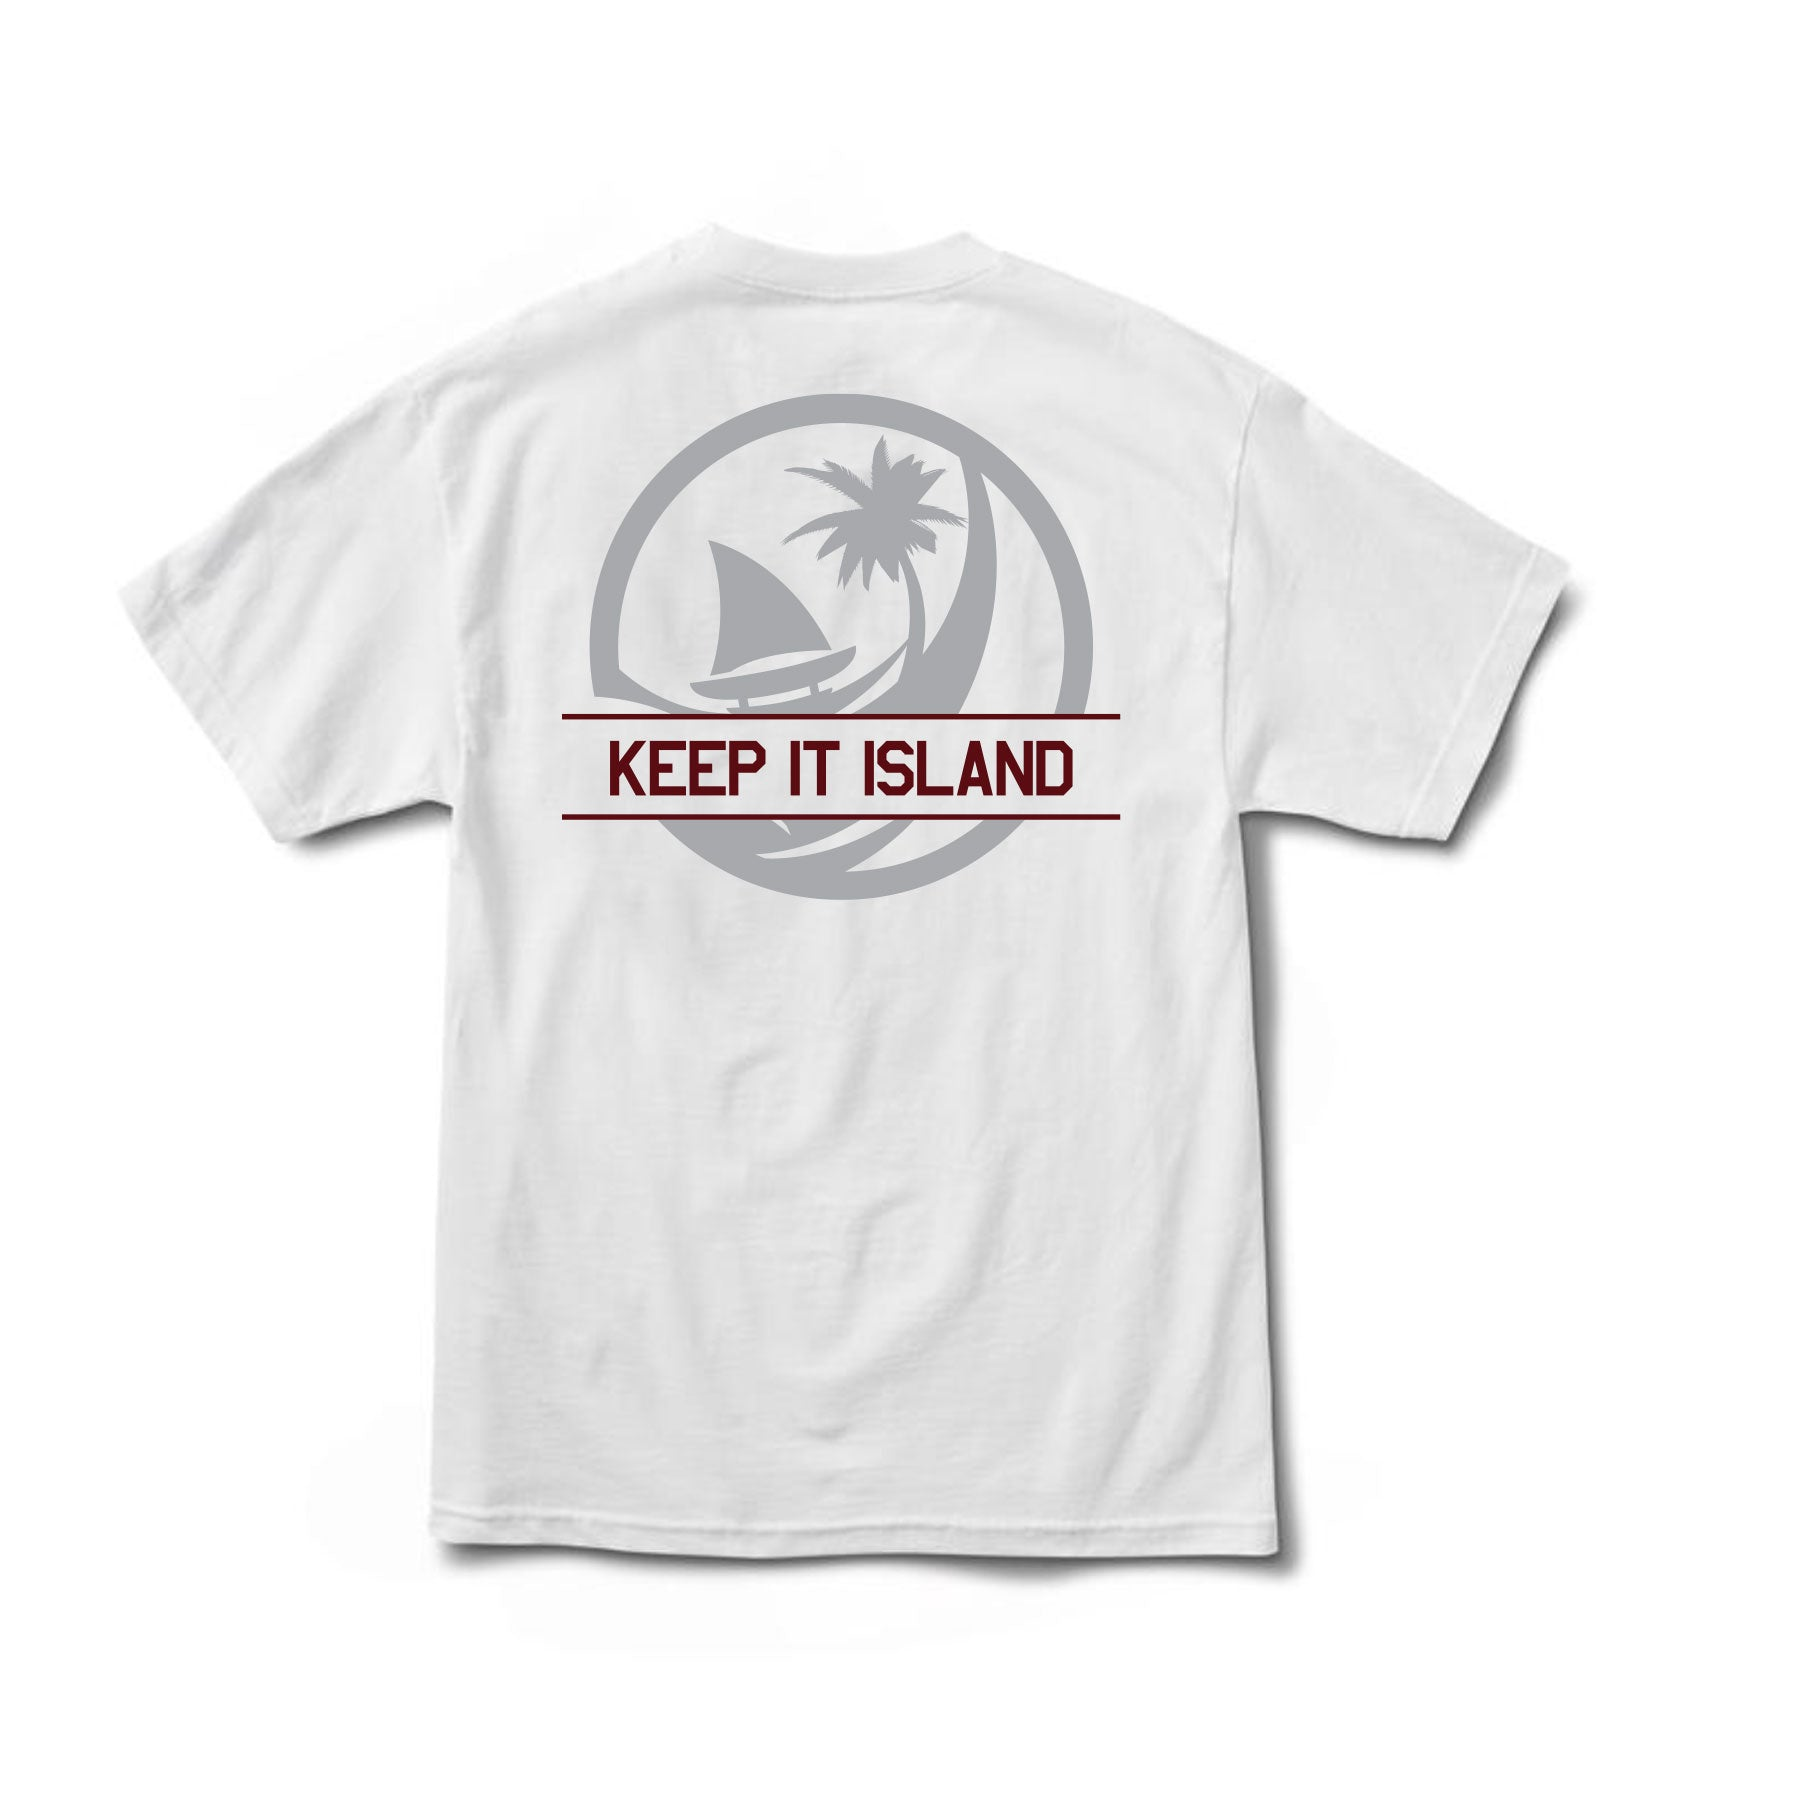 Keep It Island Tee by Guamstyle